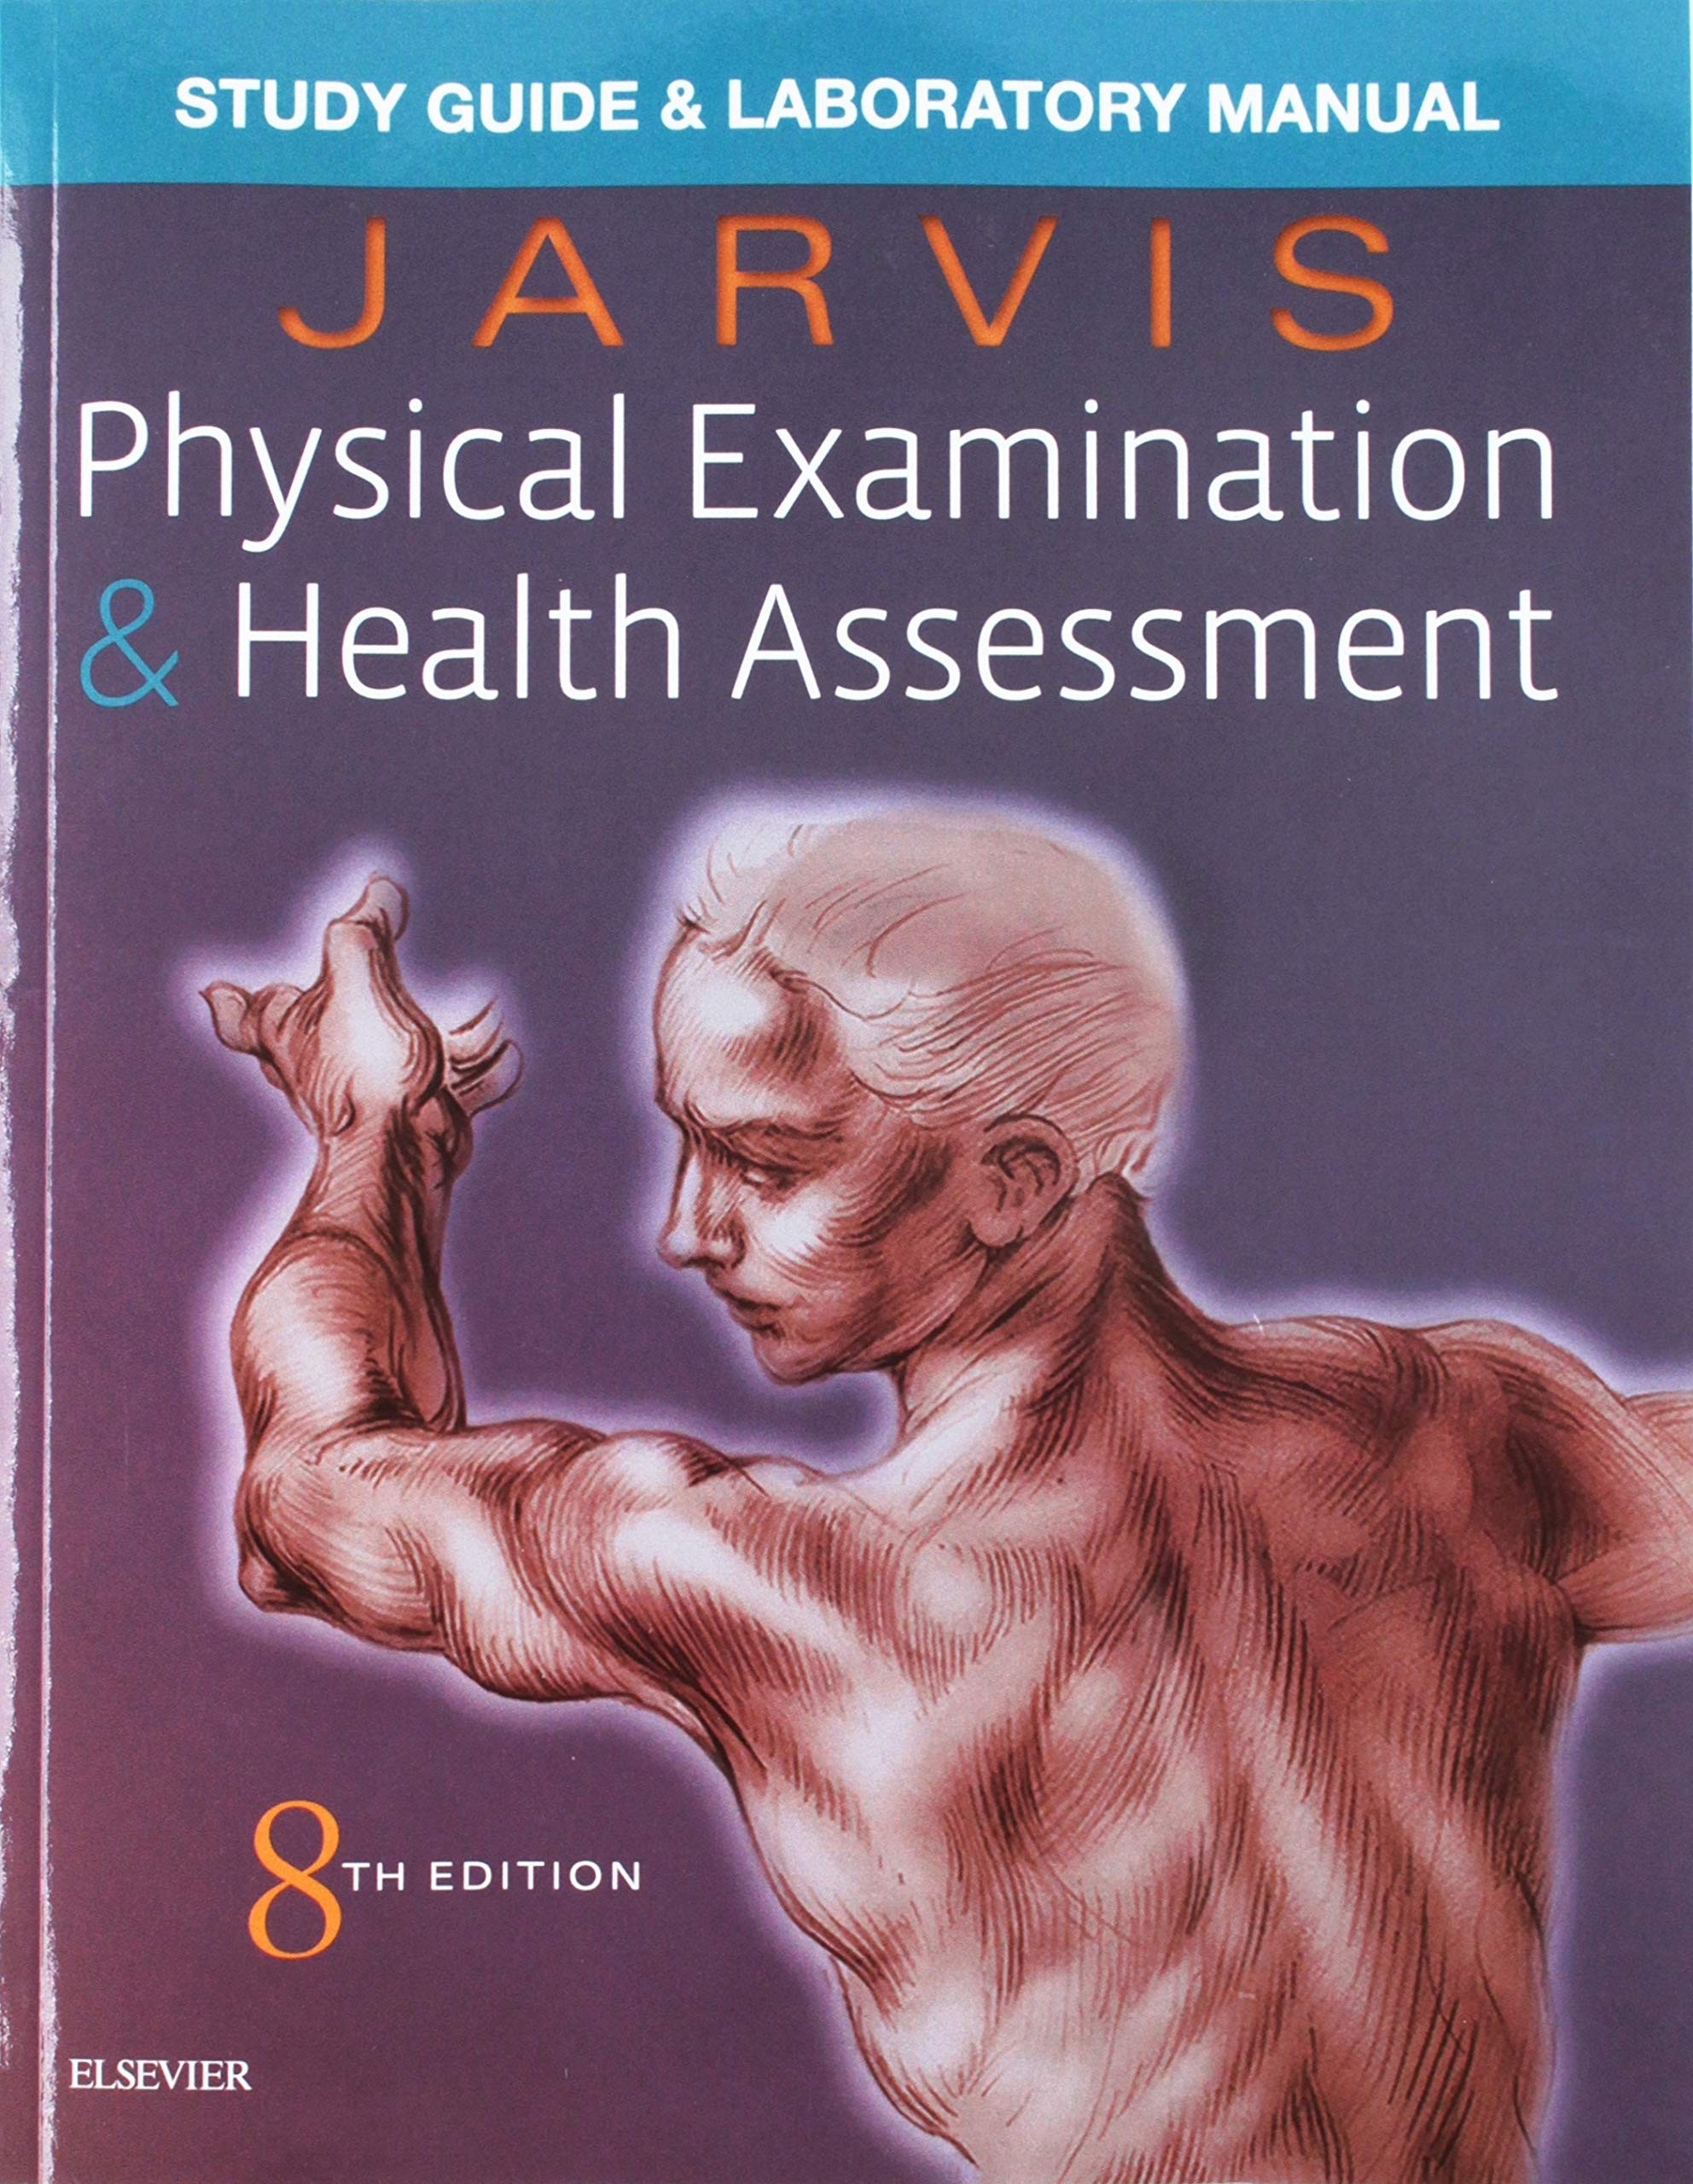 Laboratory Manual for Physical Examination & Health Assessment by Saunders